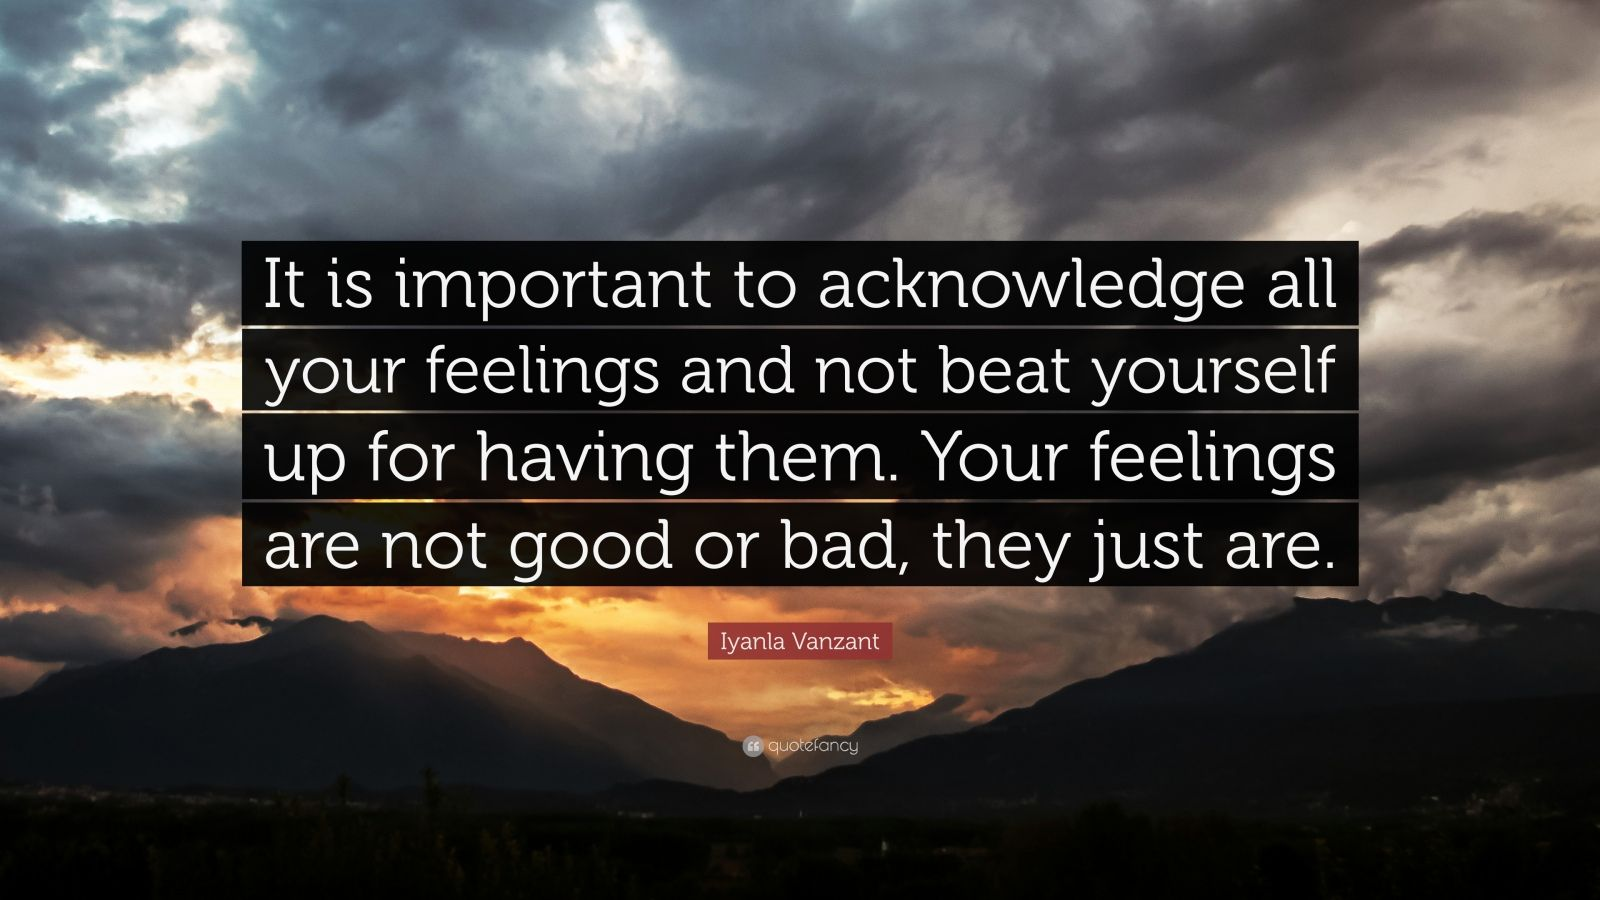 "Iyanla Vanzant Quote: ""It is important to acknowledge all your feelings and not beat yourself up for having them. Your feelings are not good or bad, they just are."""